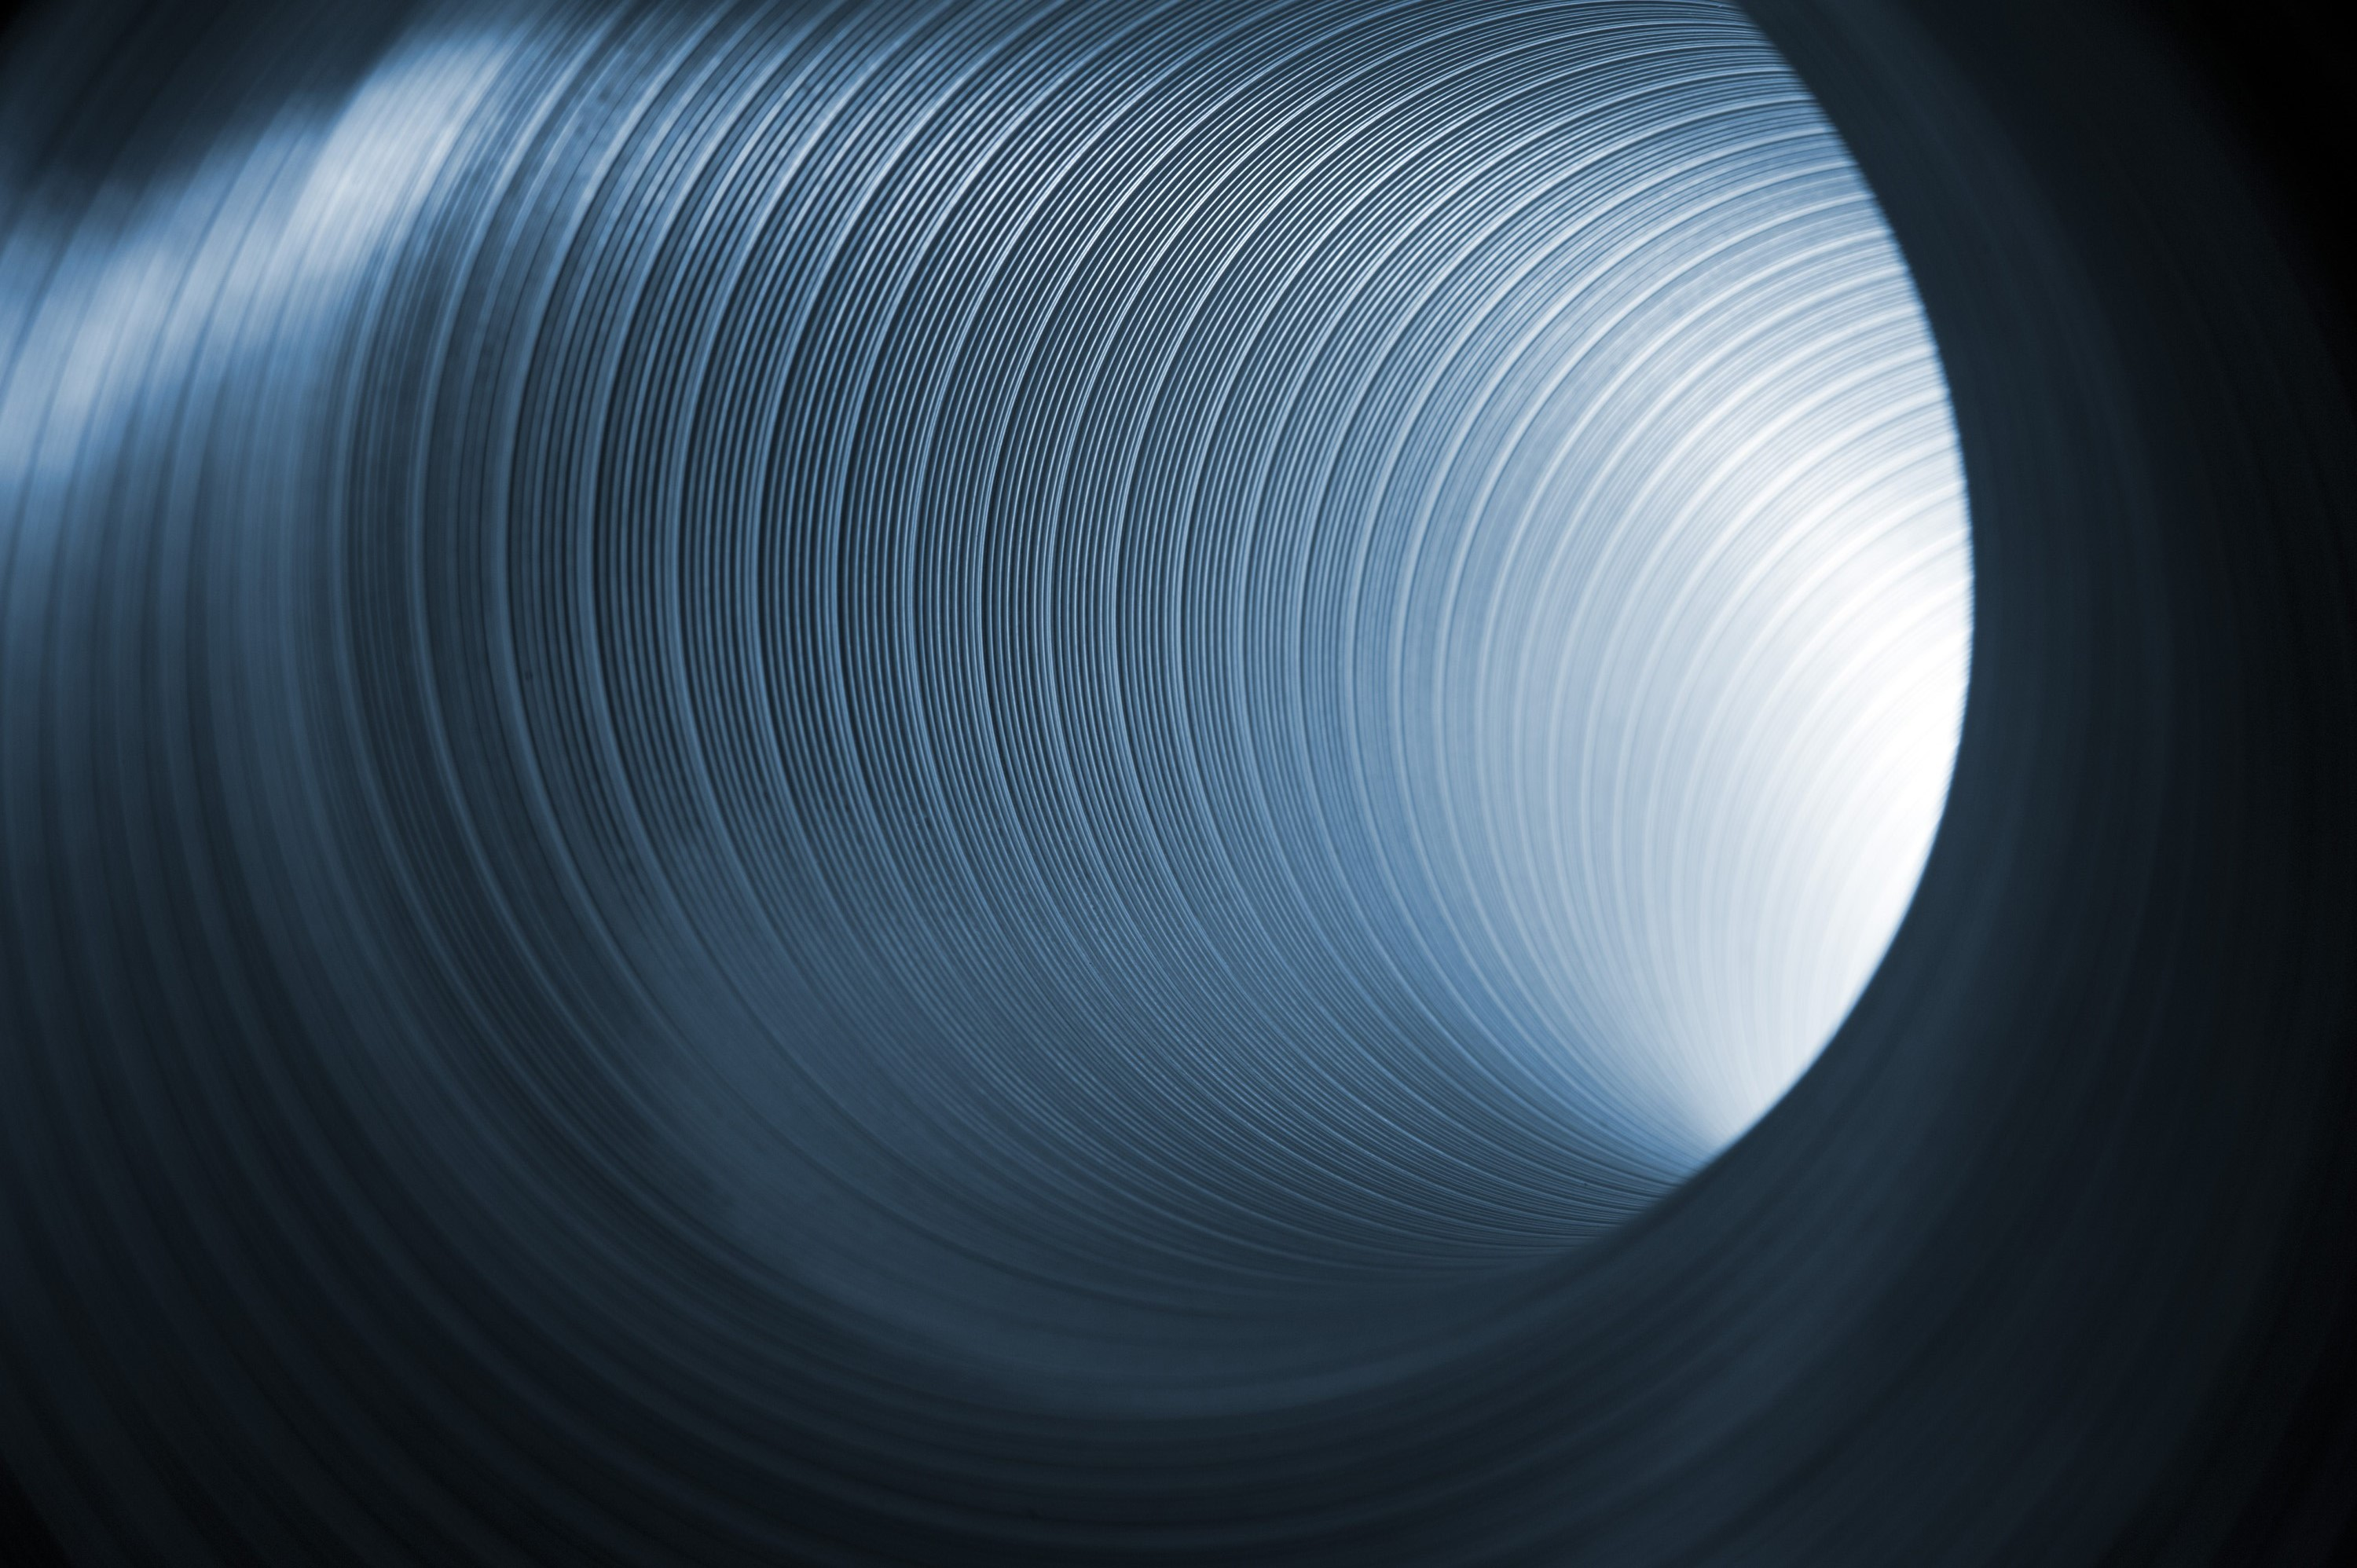 abstract image of light glowing at the end of a metal tube